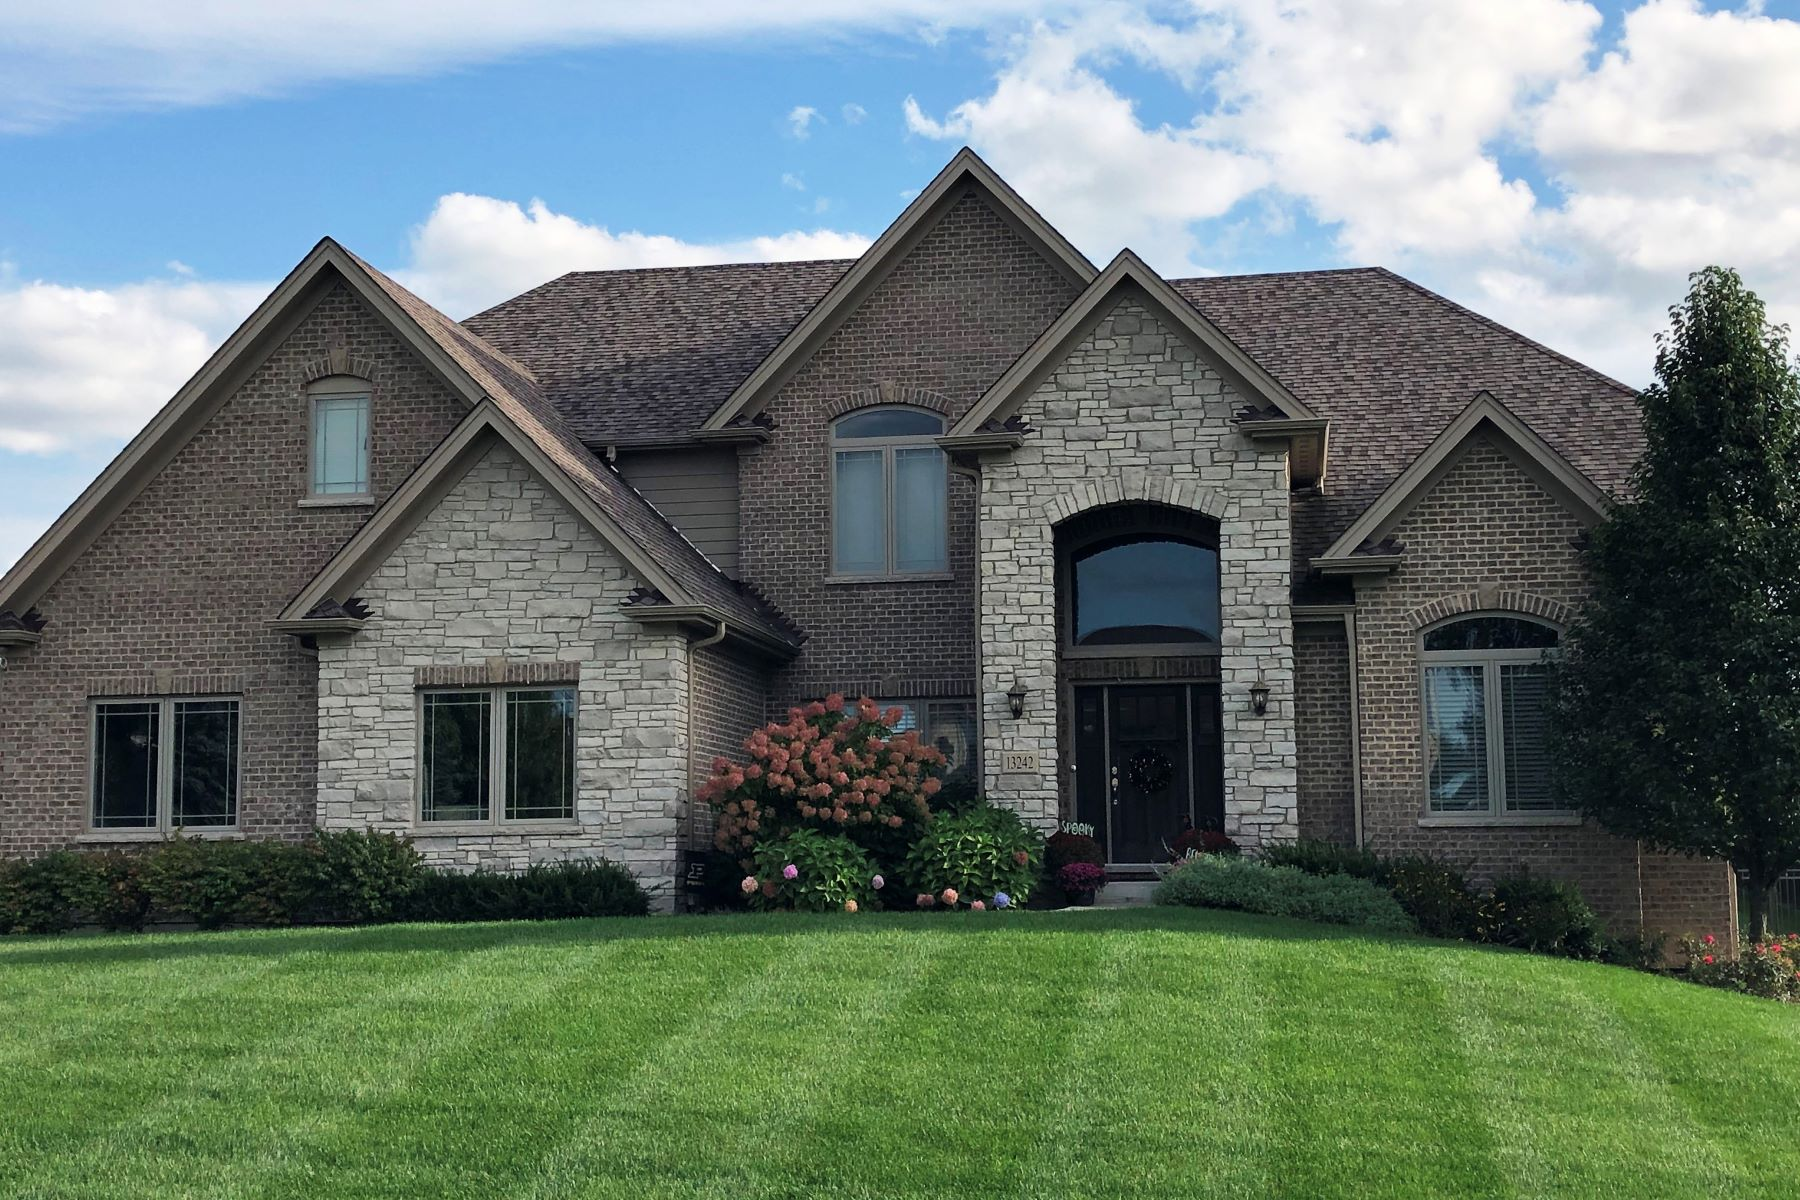 Single Family Homes for Sale at Your New Dream Home 24834 West Pine Cone Lane Plainfield, Illinois 60586 United States